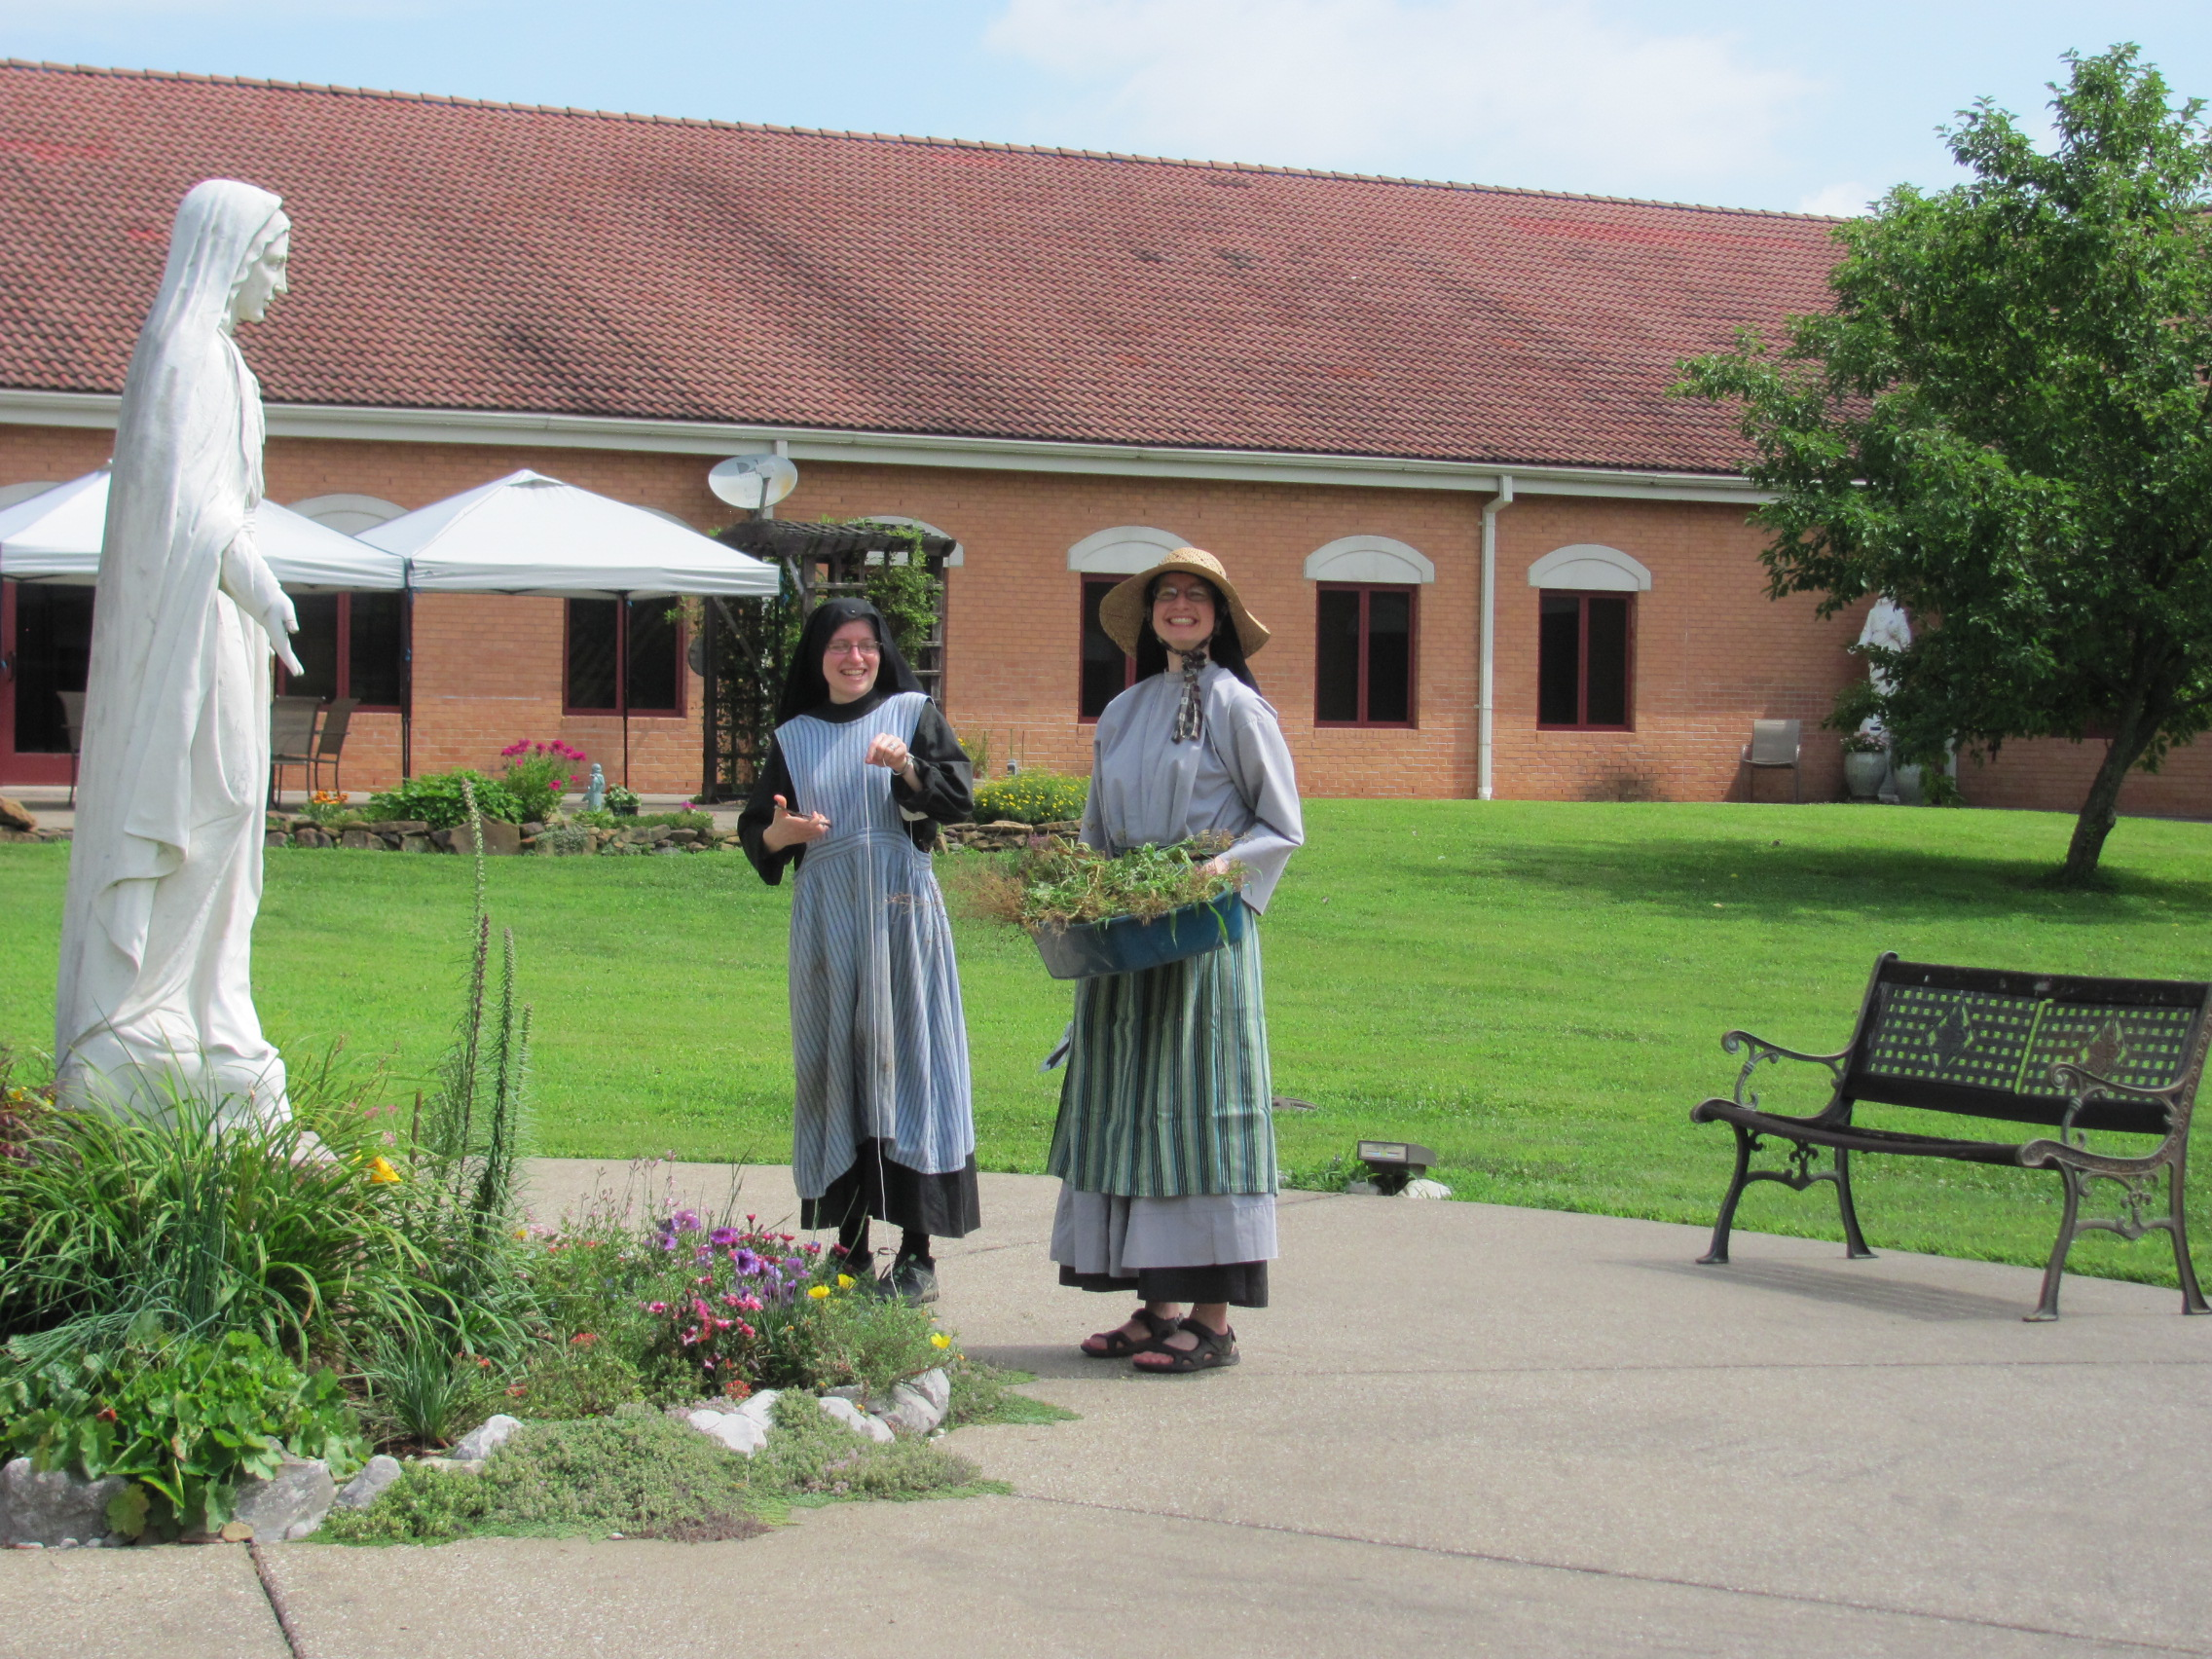 Sr. Frances Marie and Sr. Cecilia Maria gardening in the monastery courtyard.